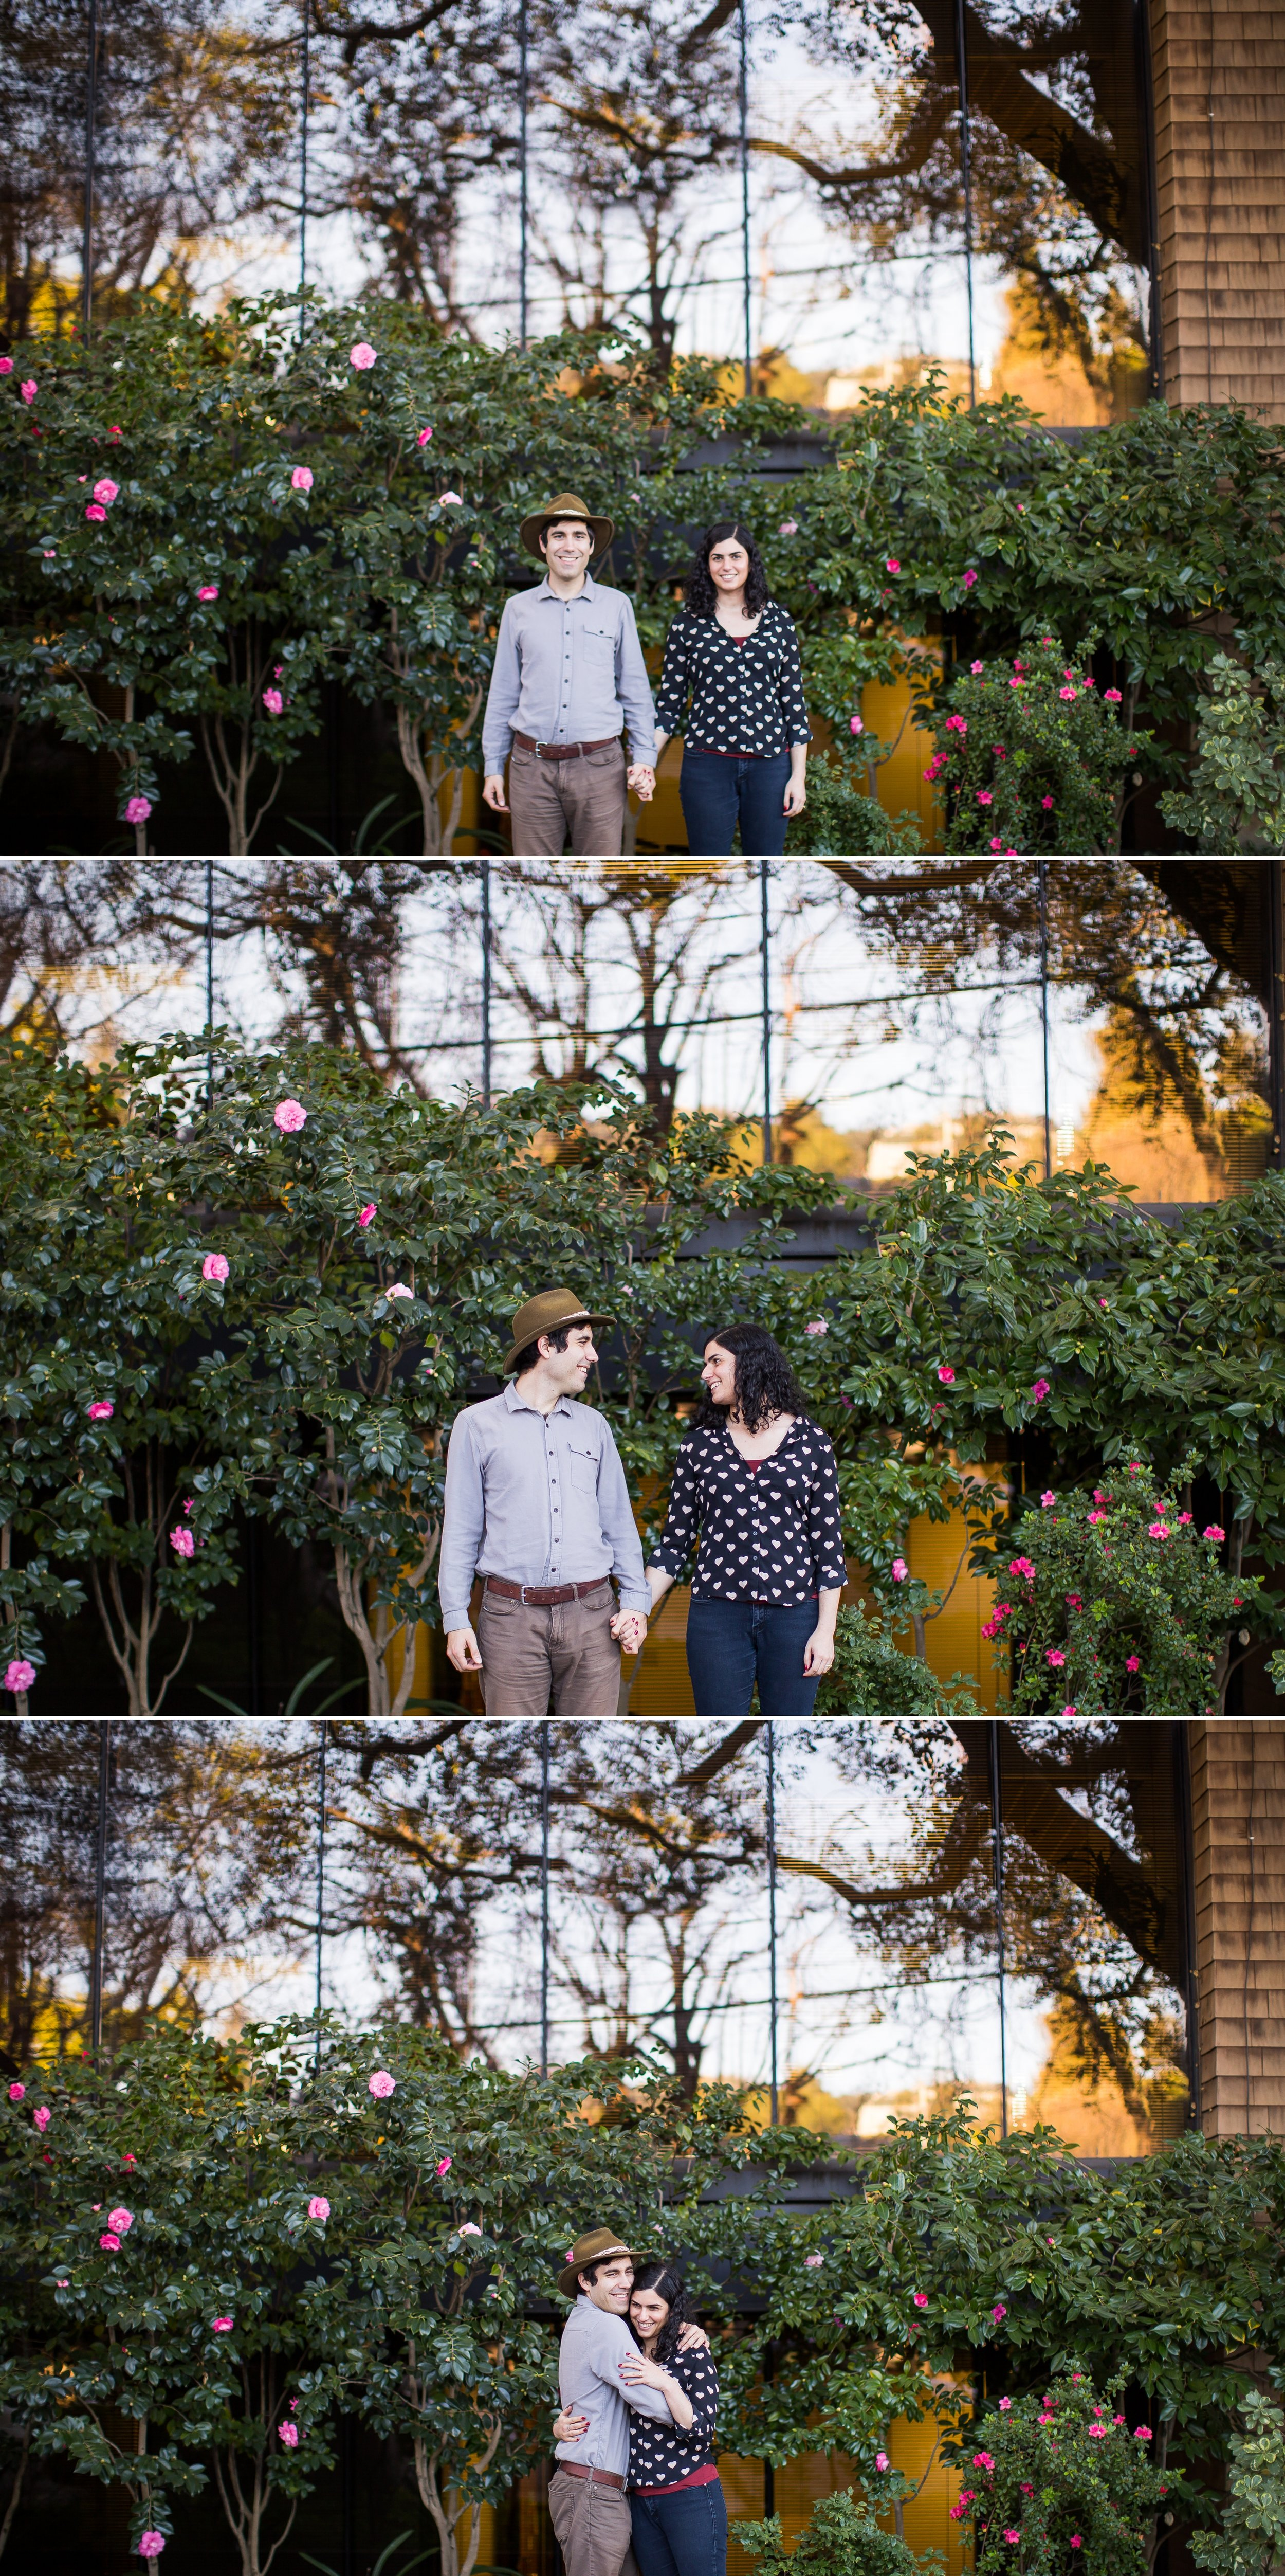 emily and brian 4.jpg